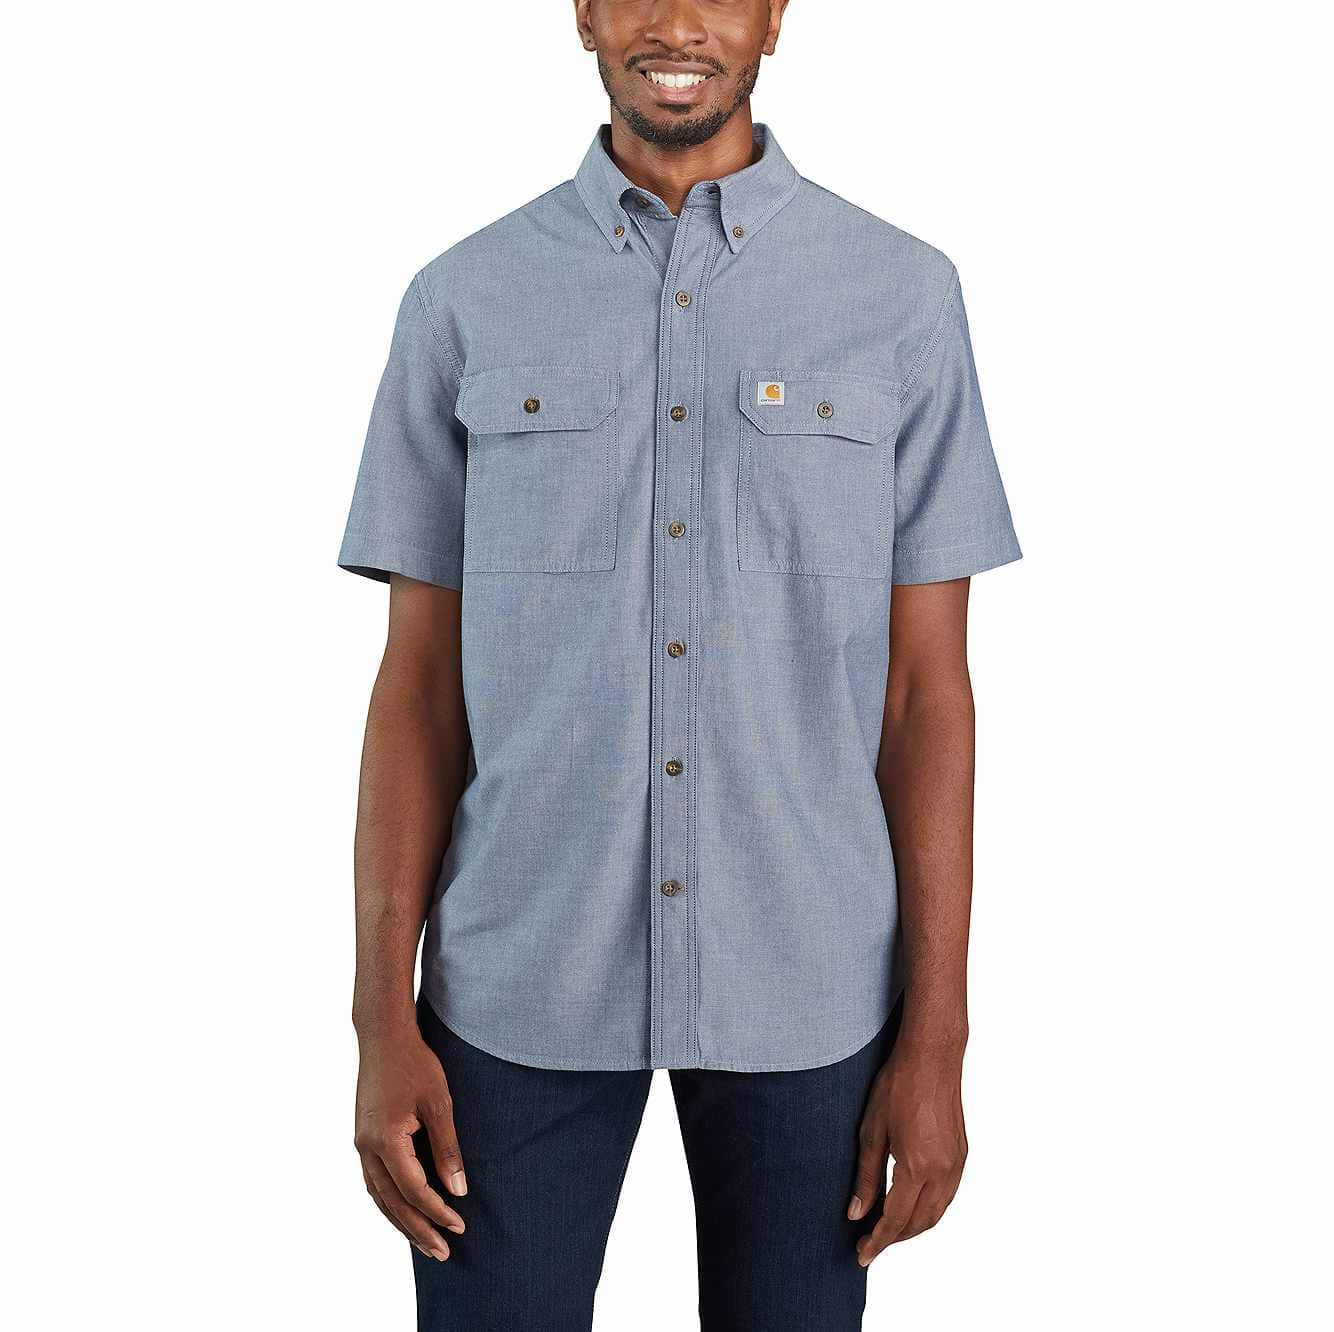 Picture of LOOSE FIT MIDWEIGHT SHORT-SLEEVE BUTTON-FRONT SHIRT in Denim Blue Chambray